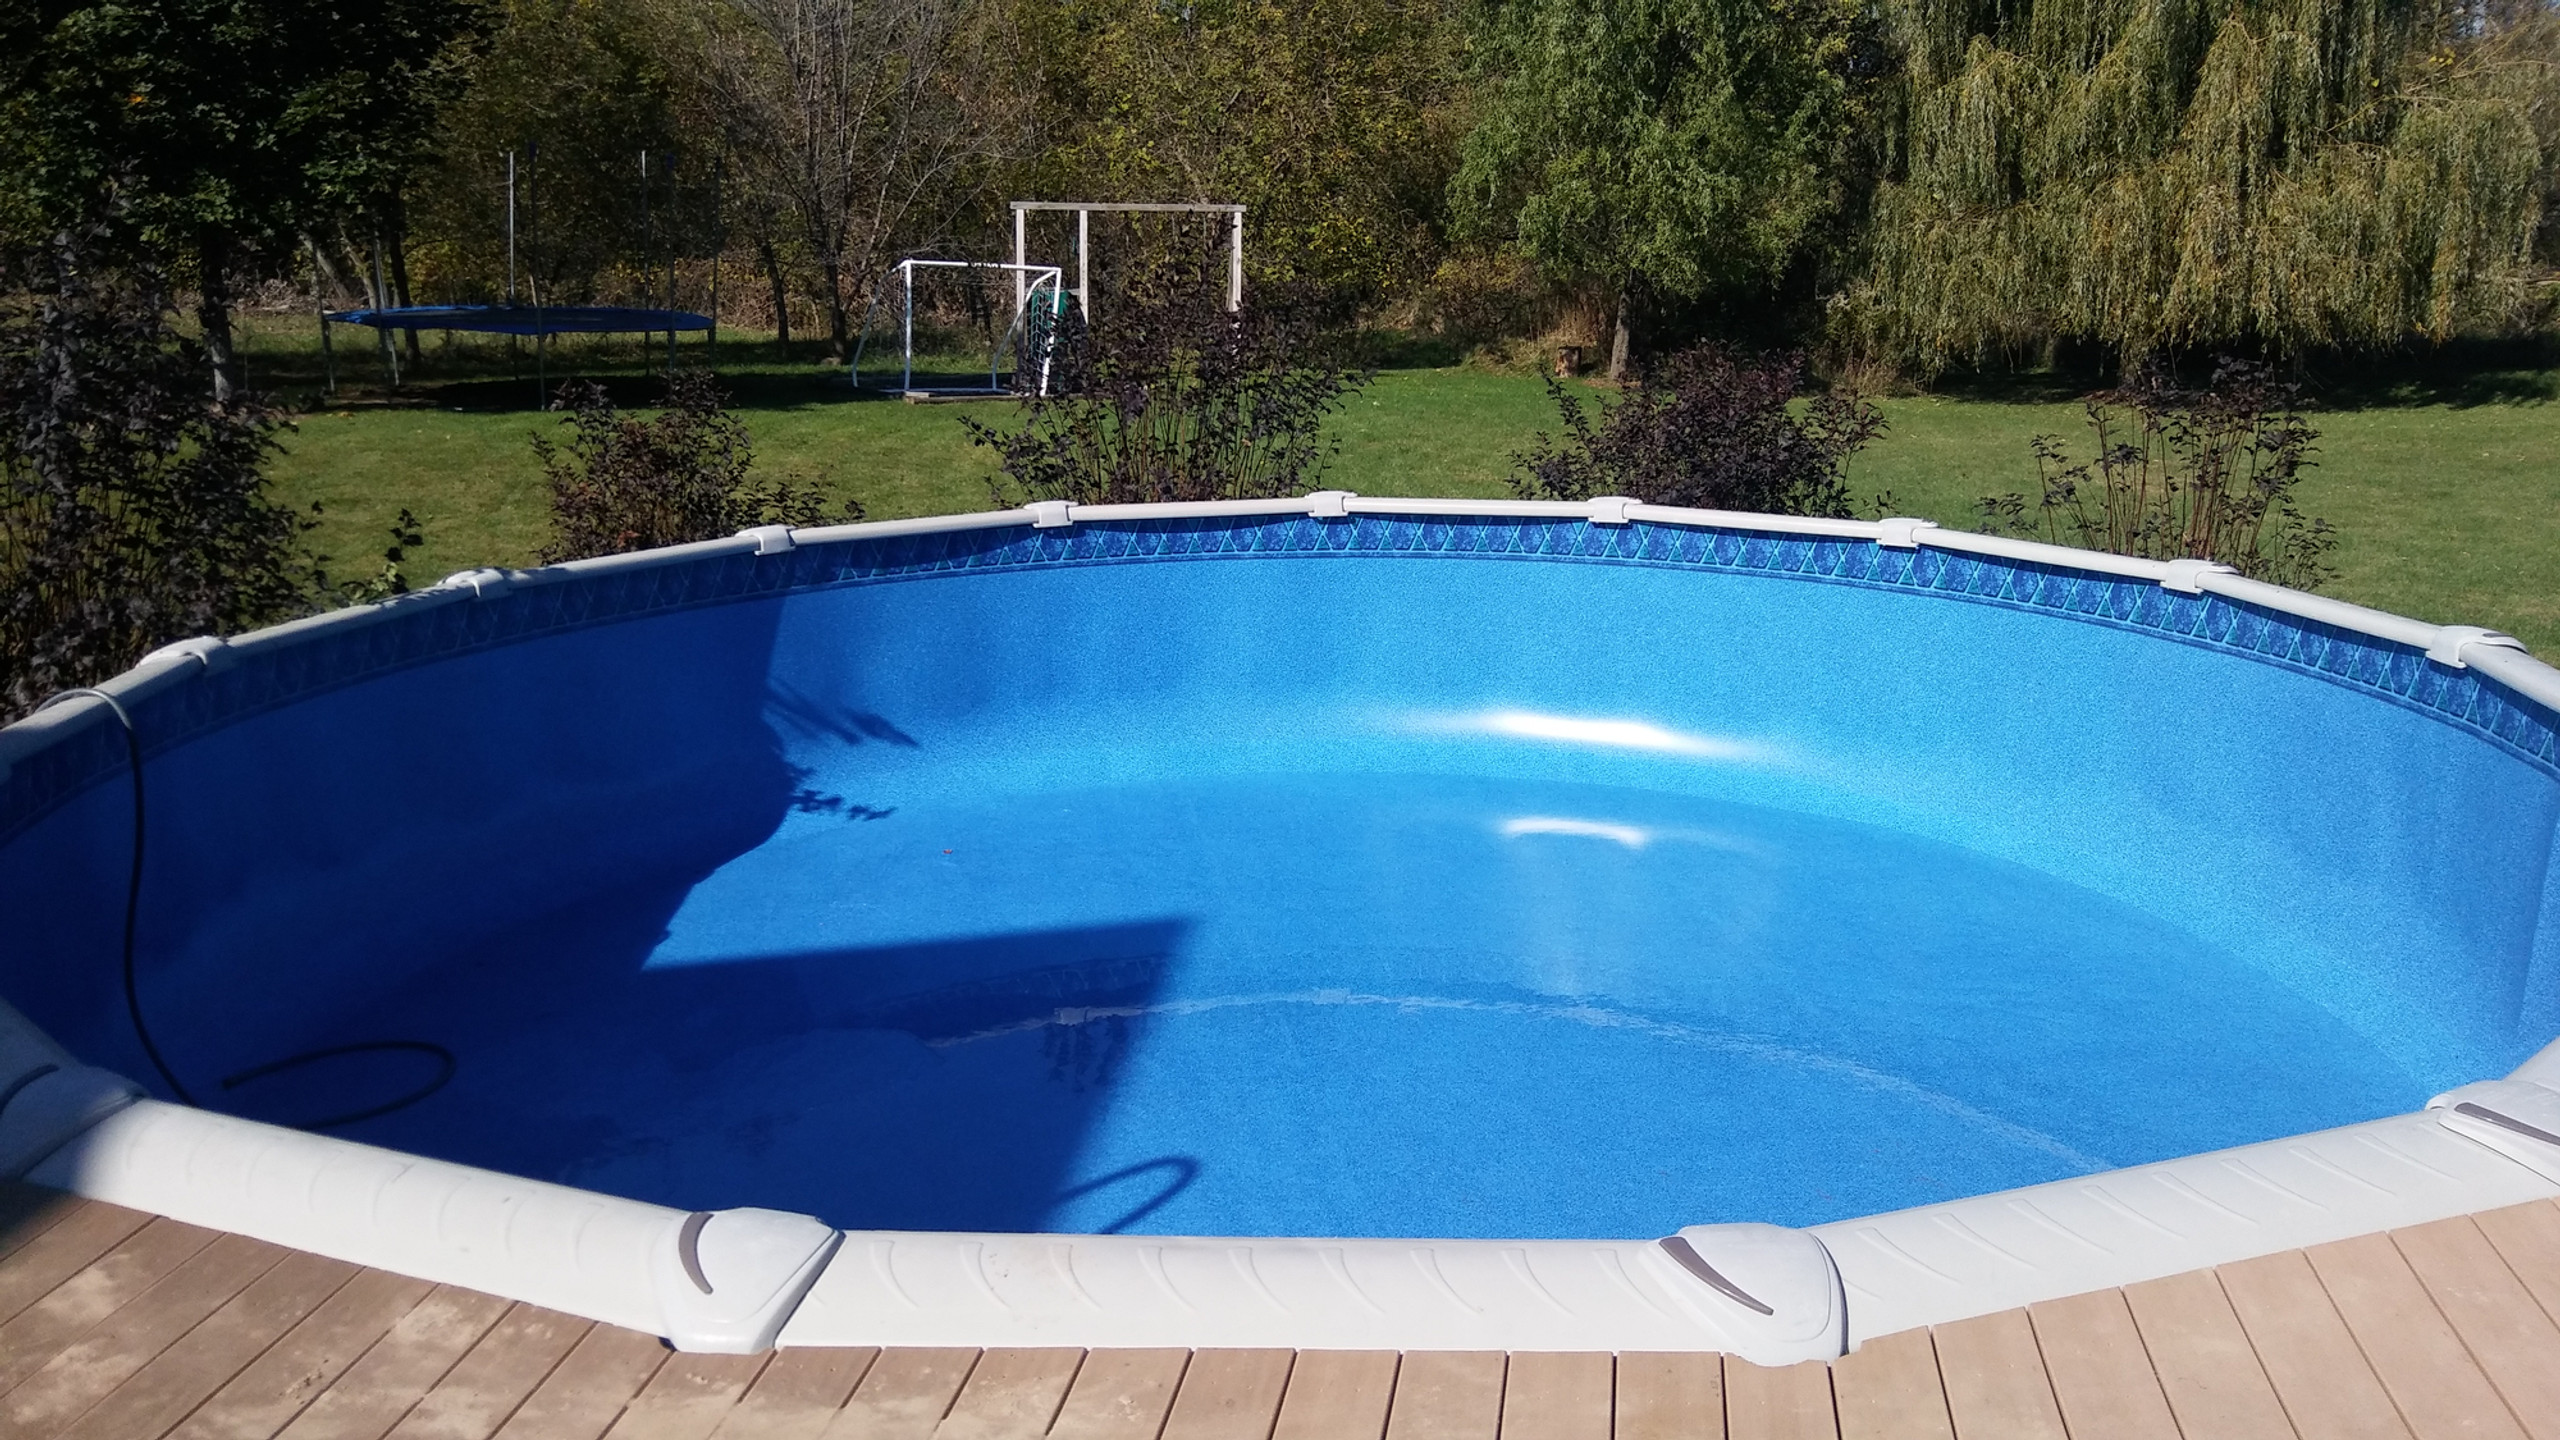 Pool Pros very own Evolution above Ground Pool. This 24' Round Pool was built in Little Suamico WI in 2016